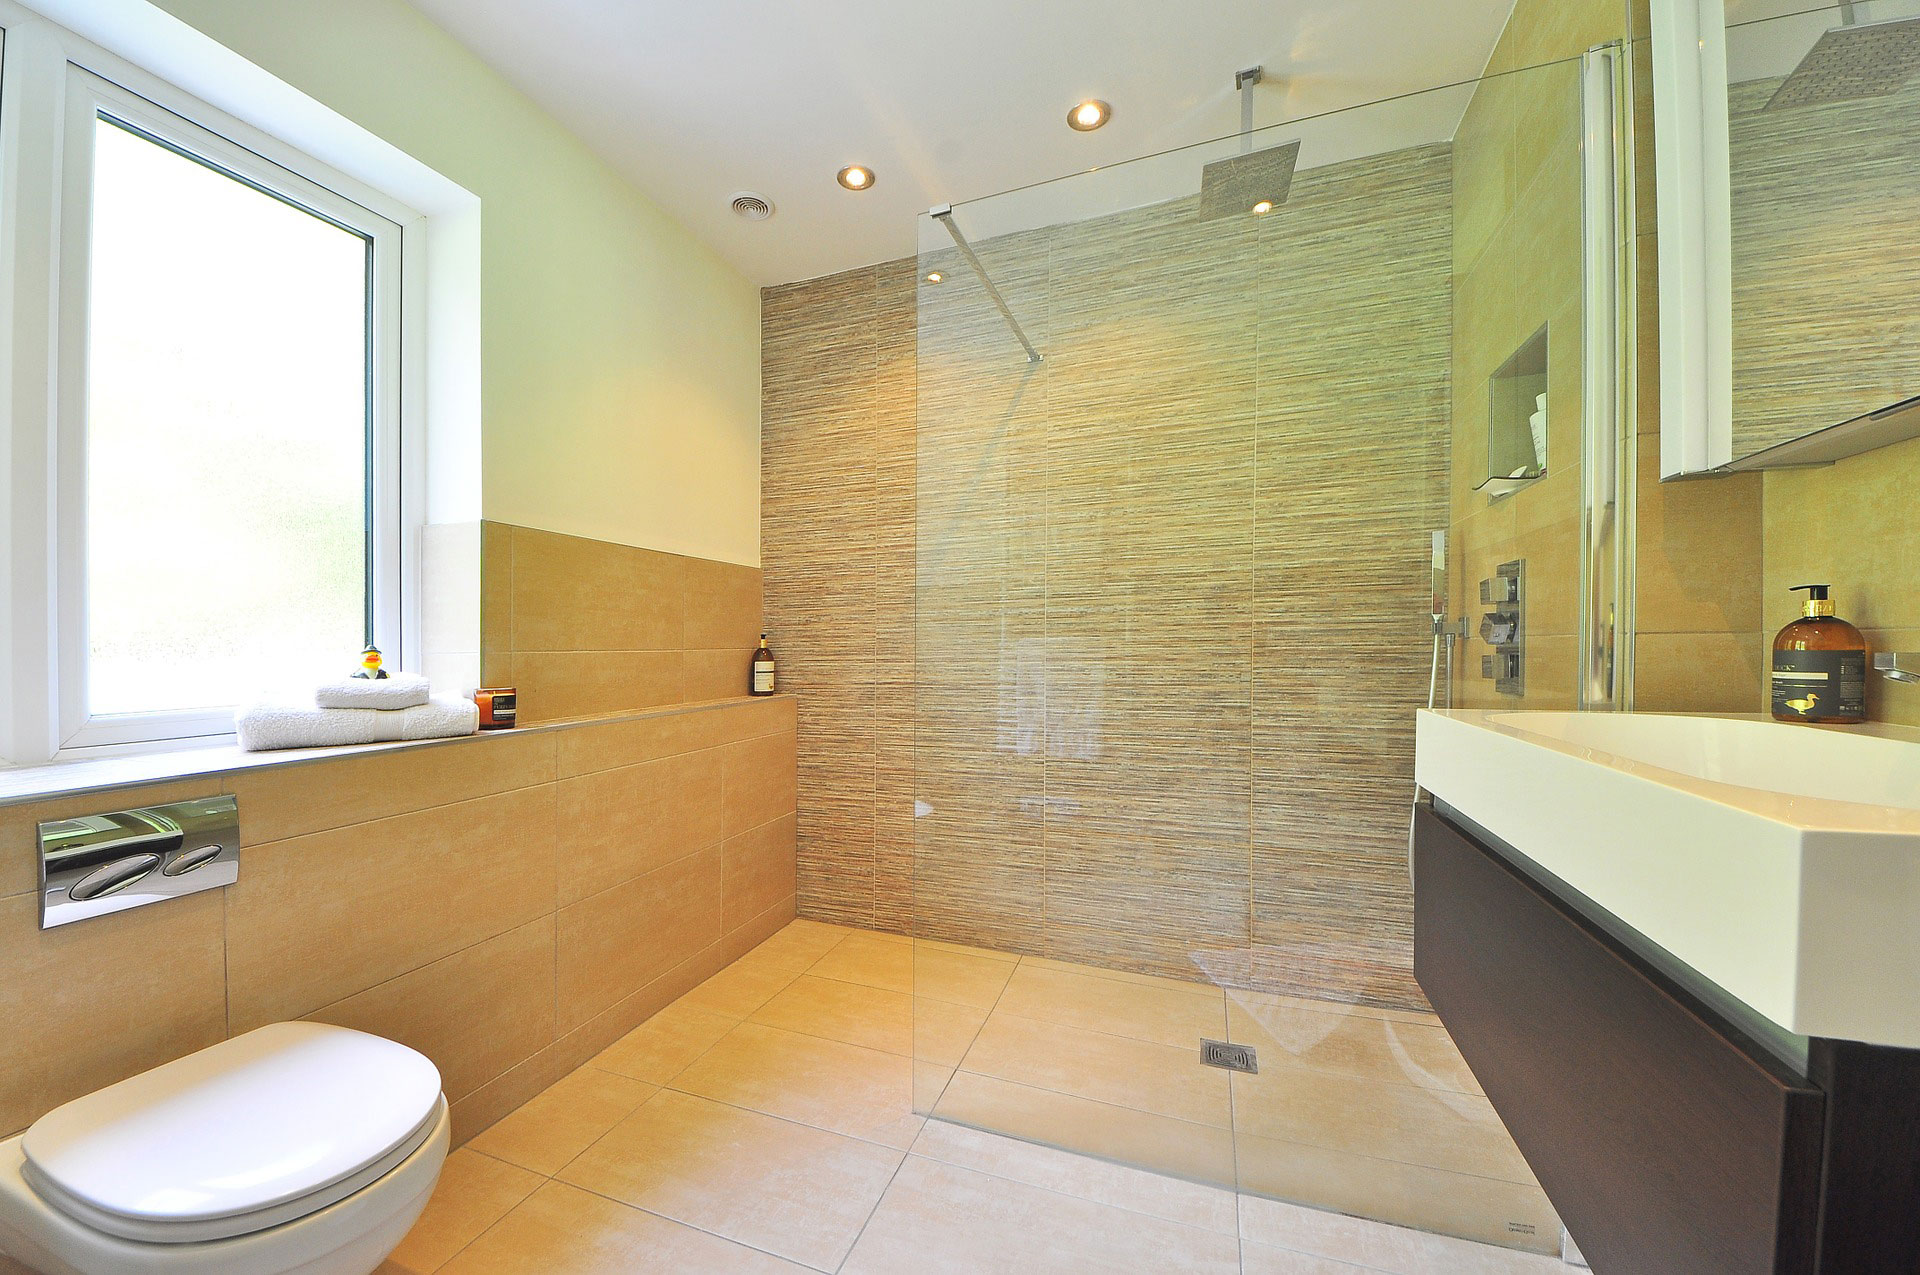 Glass Shower Doors That Inspire A Bathroom Upgrade | Stouffville Glass Blog